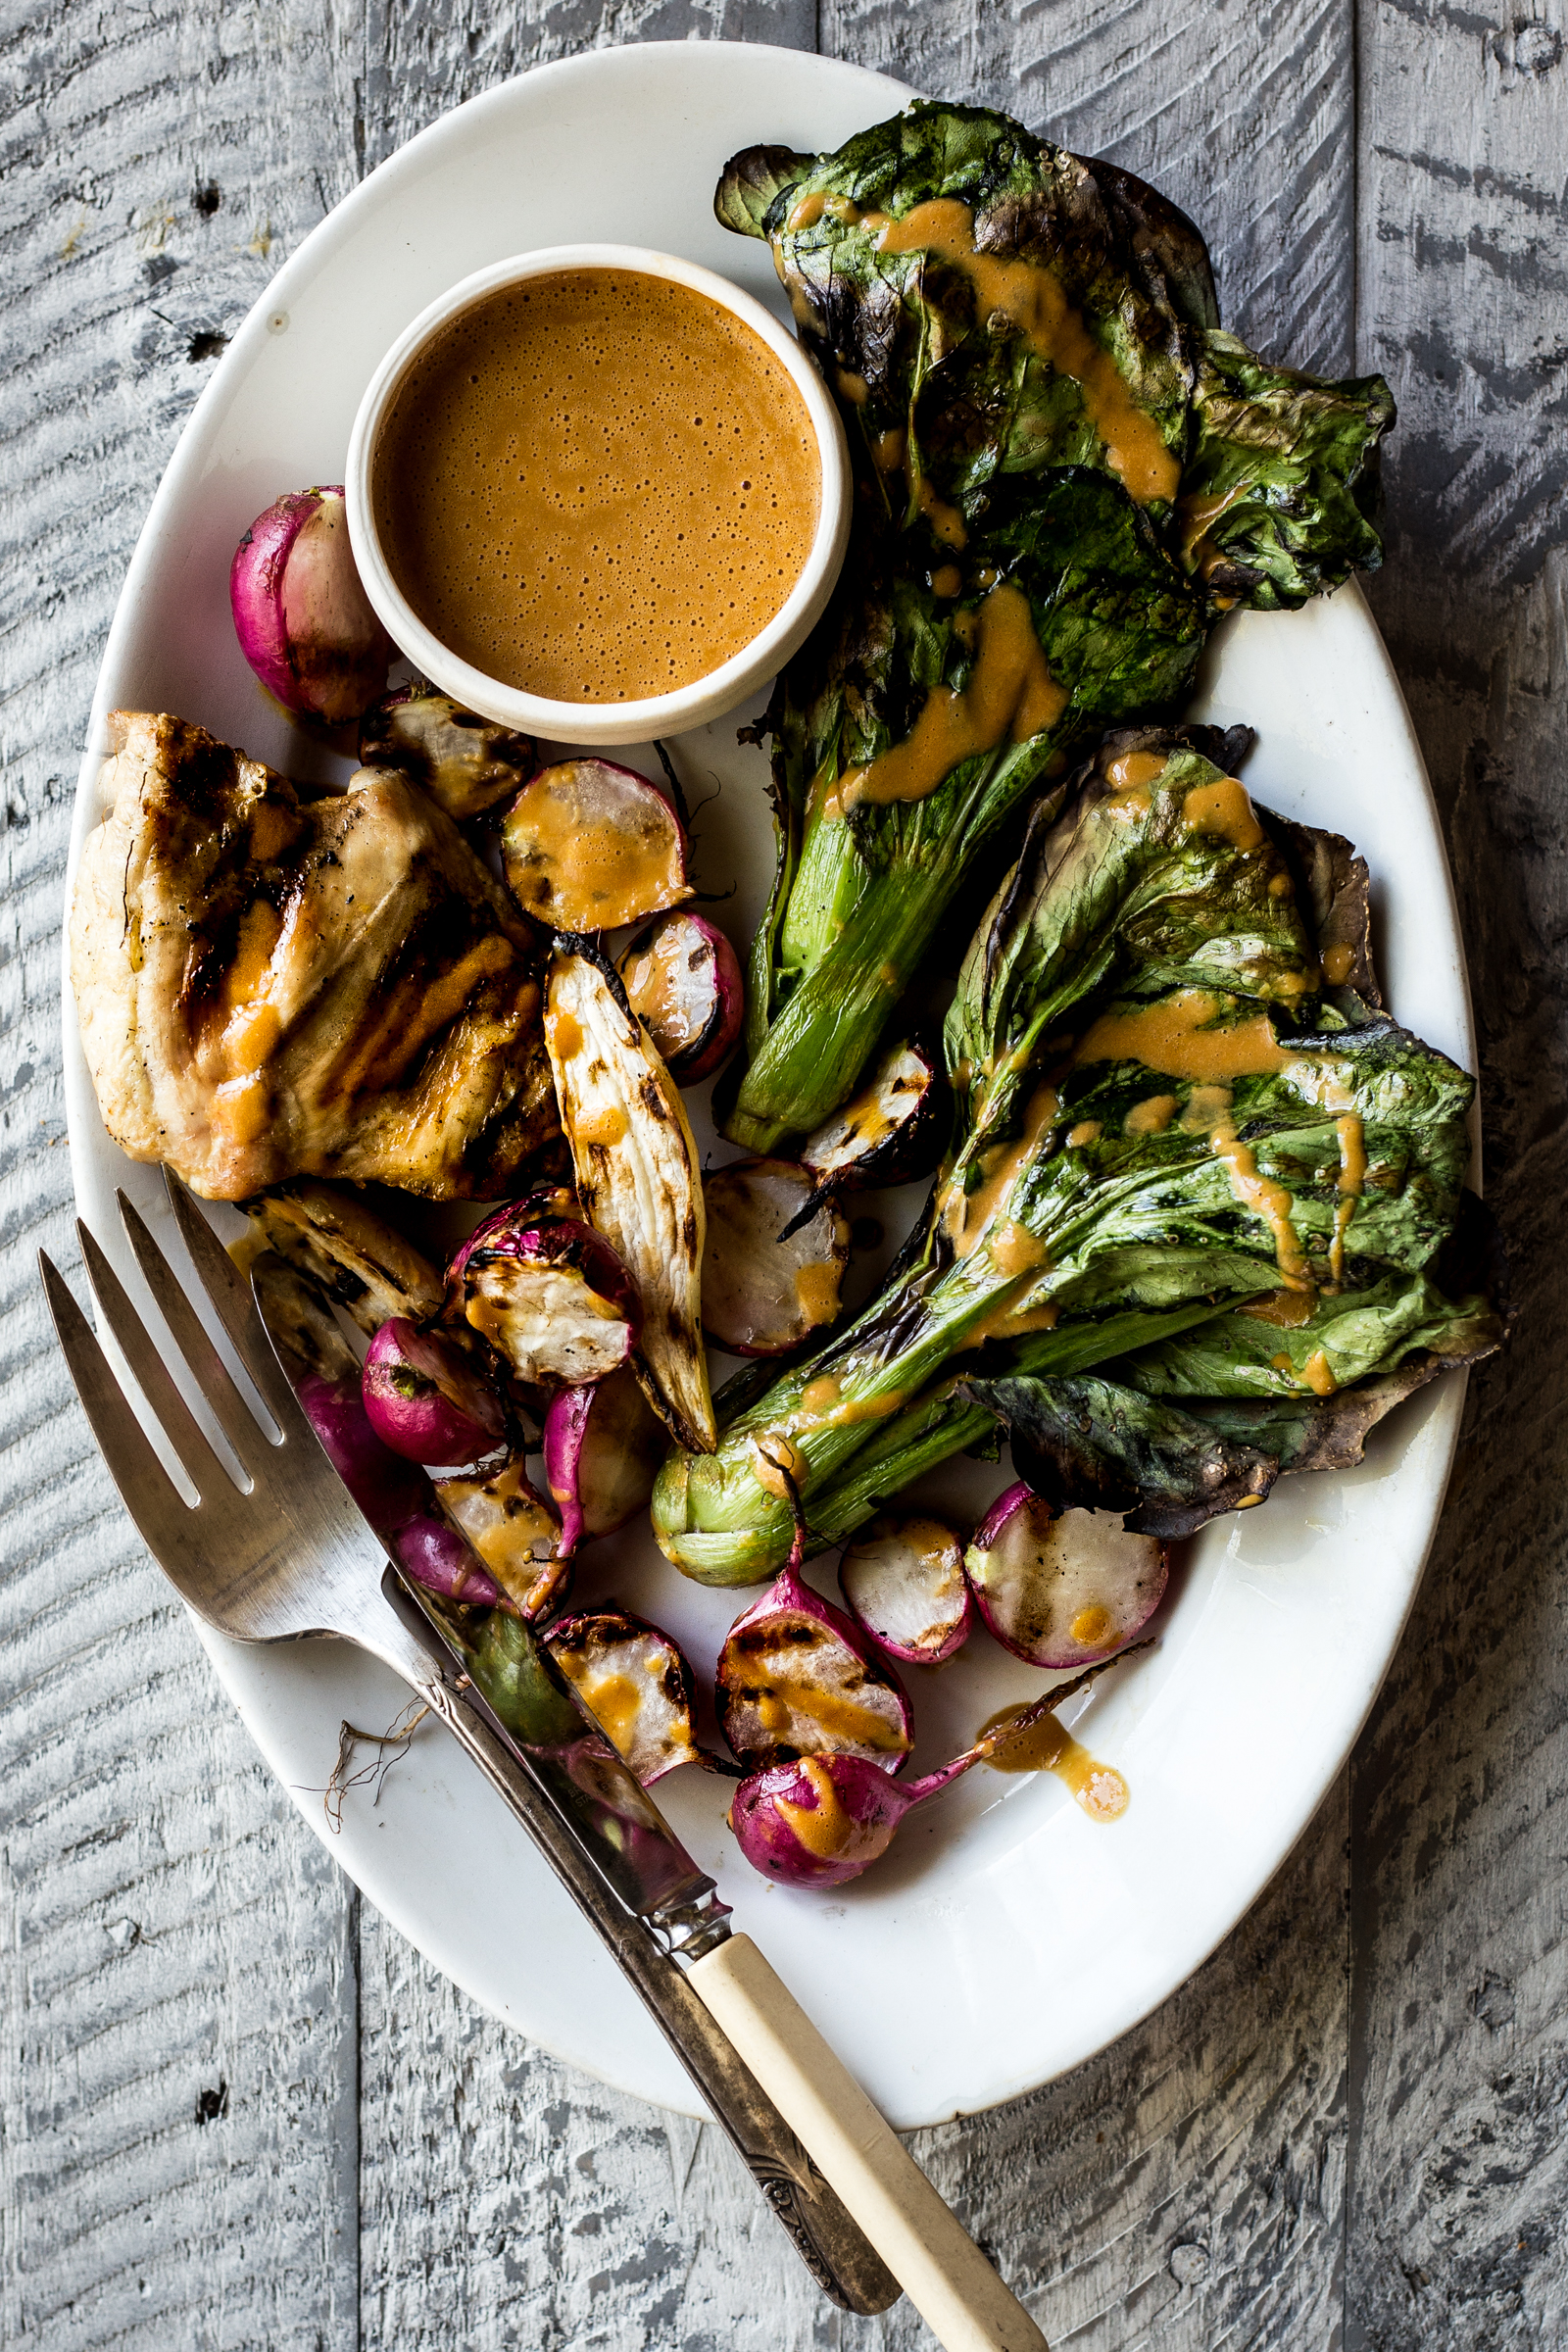 Grilled Chicken with Charred Bok Choy  , Radishes & Spicy Peanut Sauce  (substitute the radishes for turnips!)